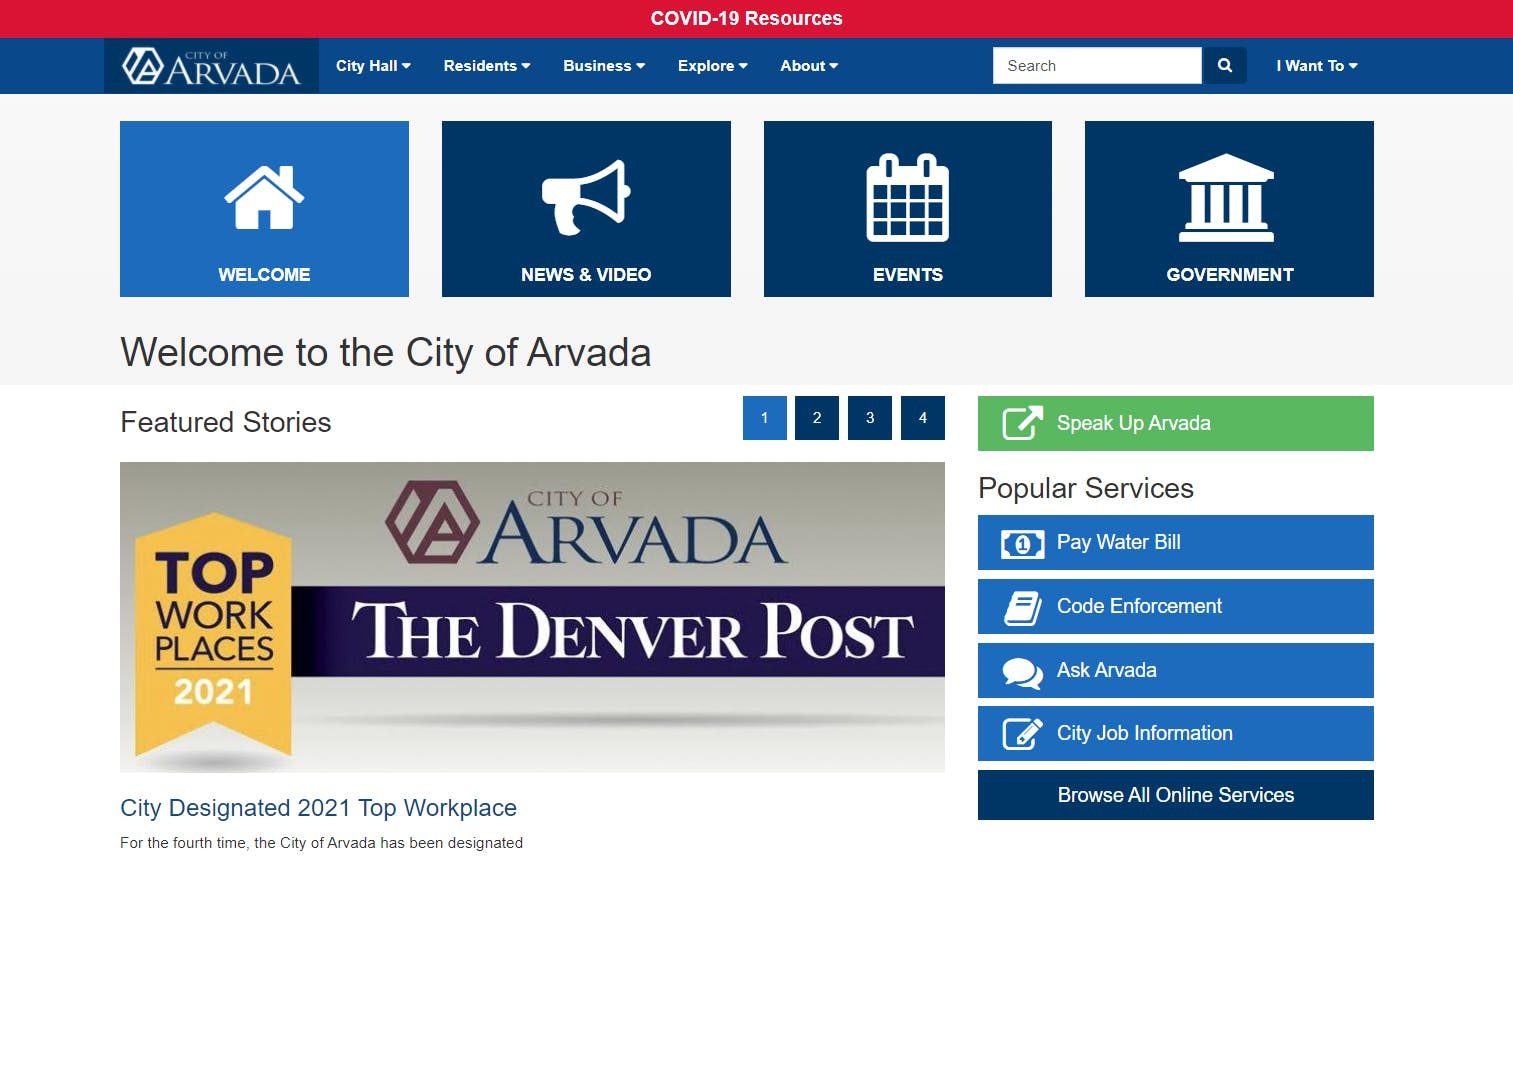 Arvada.org in 2021